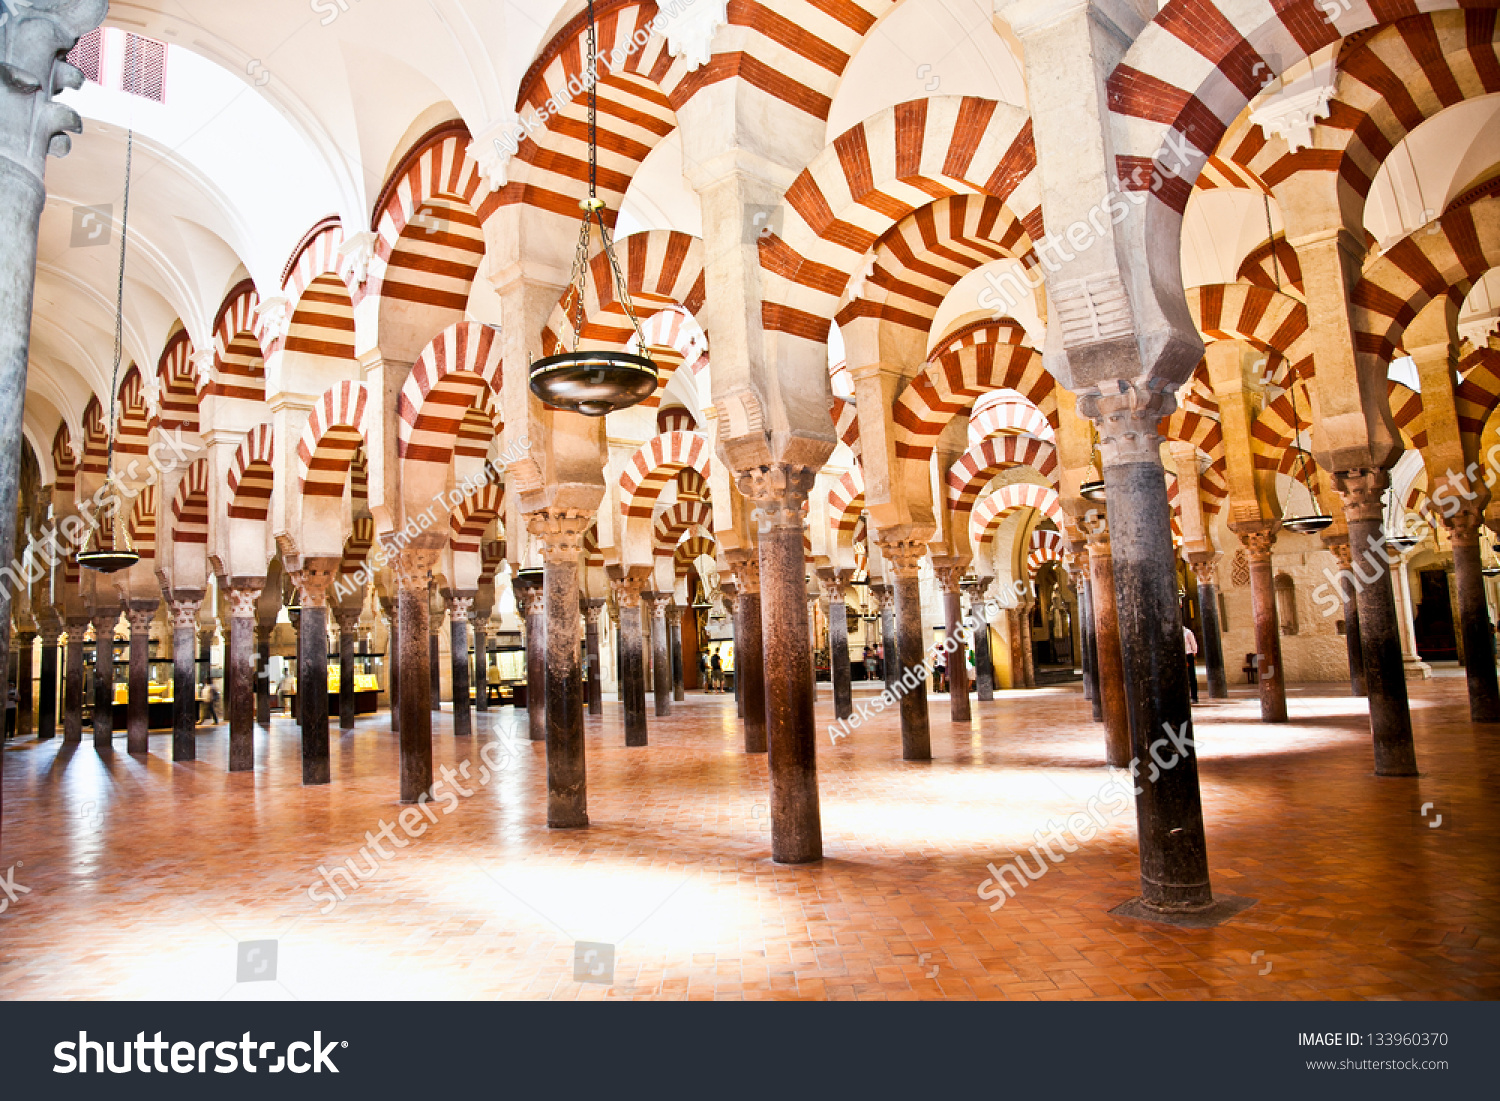 The Great Mosque And Cathedral Mezquita Famous Interior In Cordoba, Andalusia...